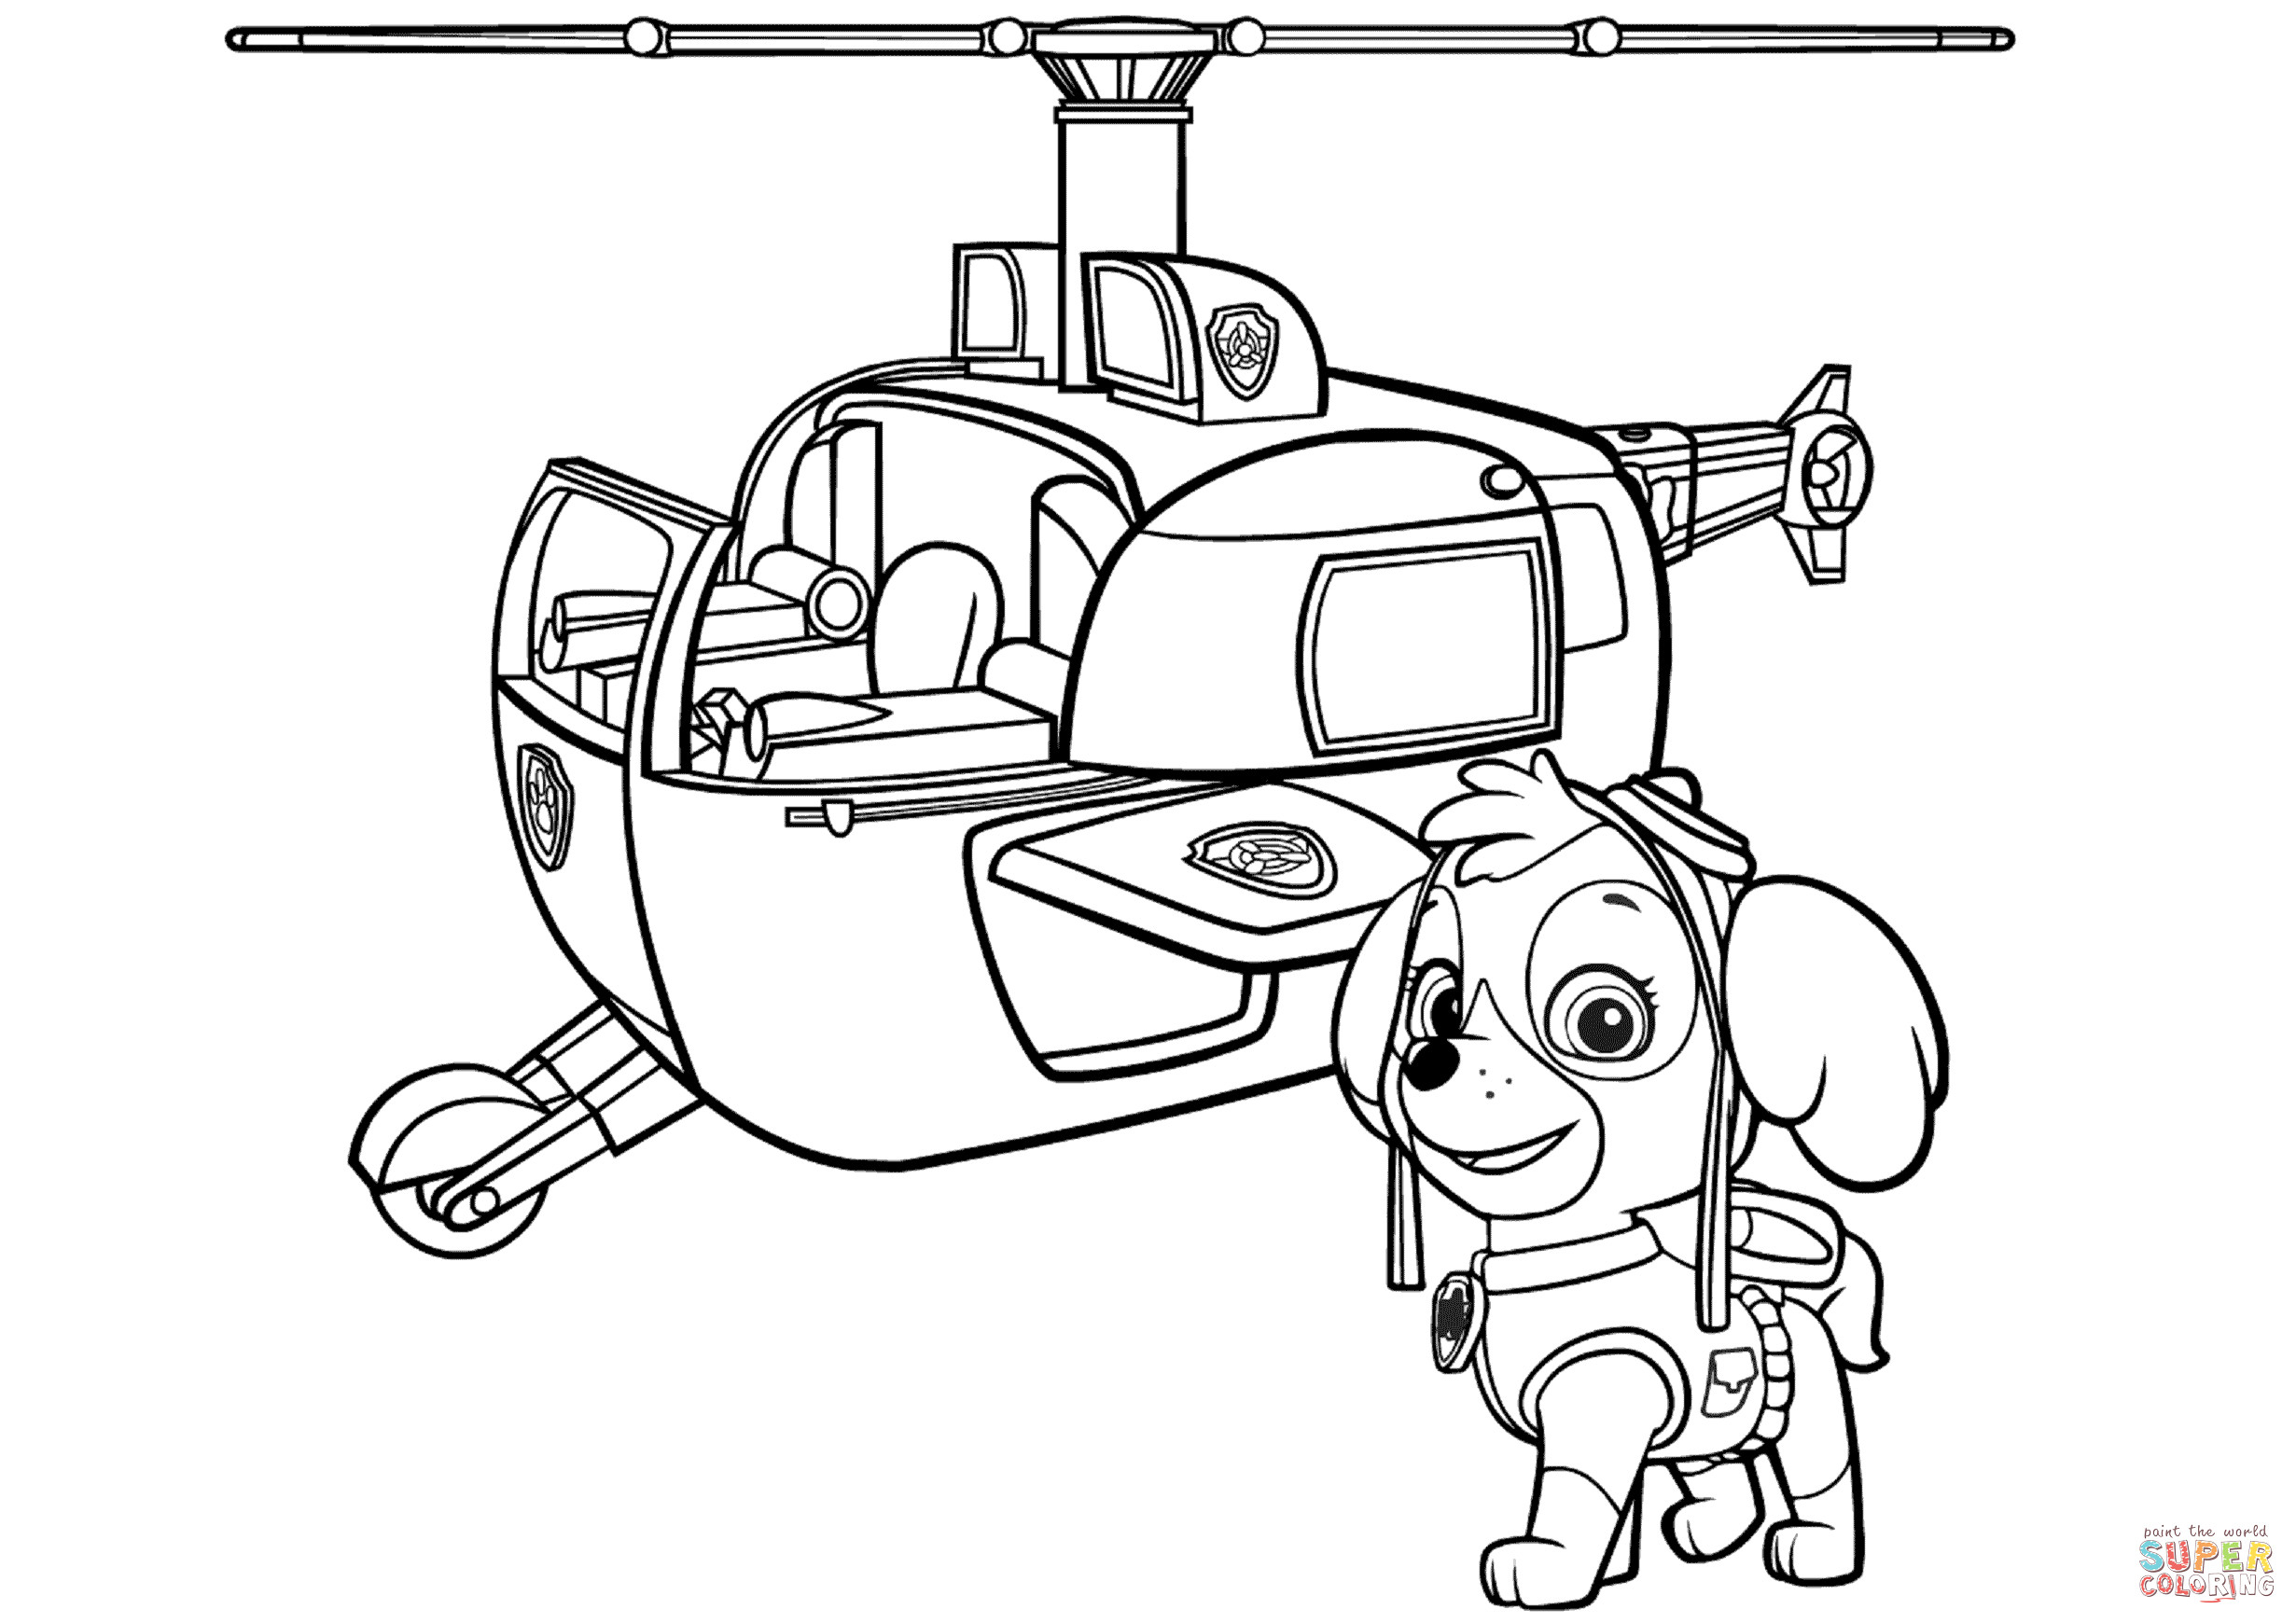 free paw patrol coloring pages paw patrol coloring pages printable free coloring sheets patrol paw pages coloring free